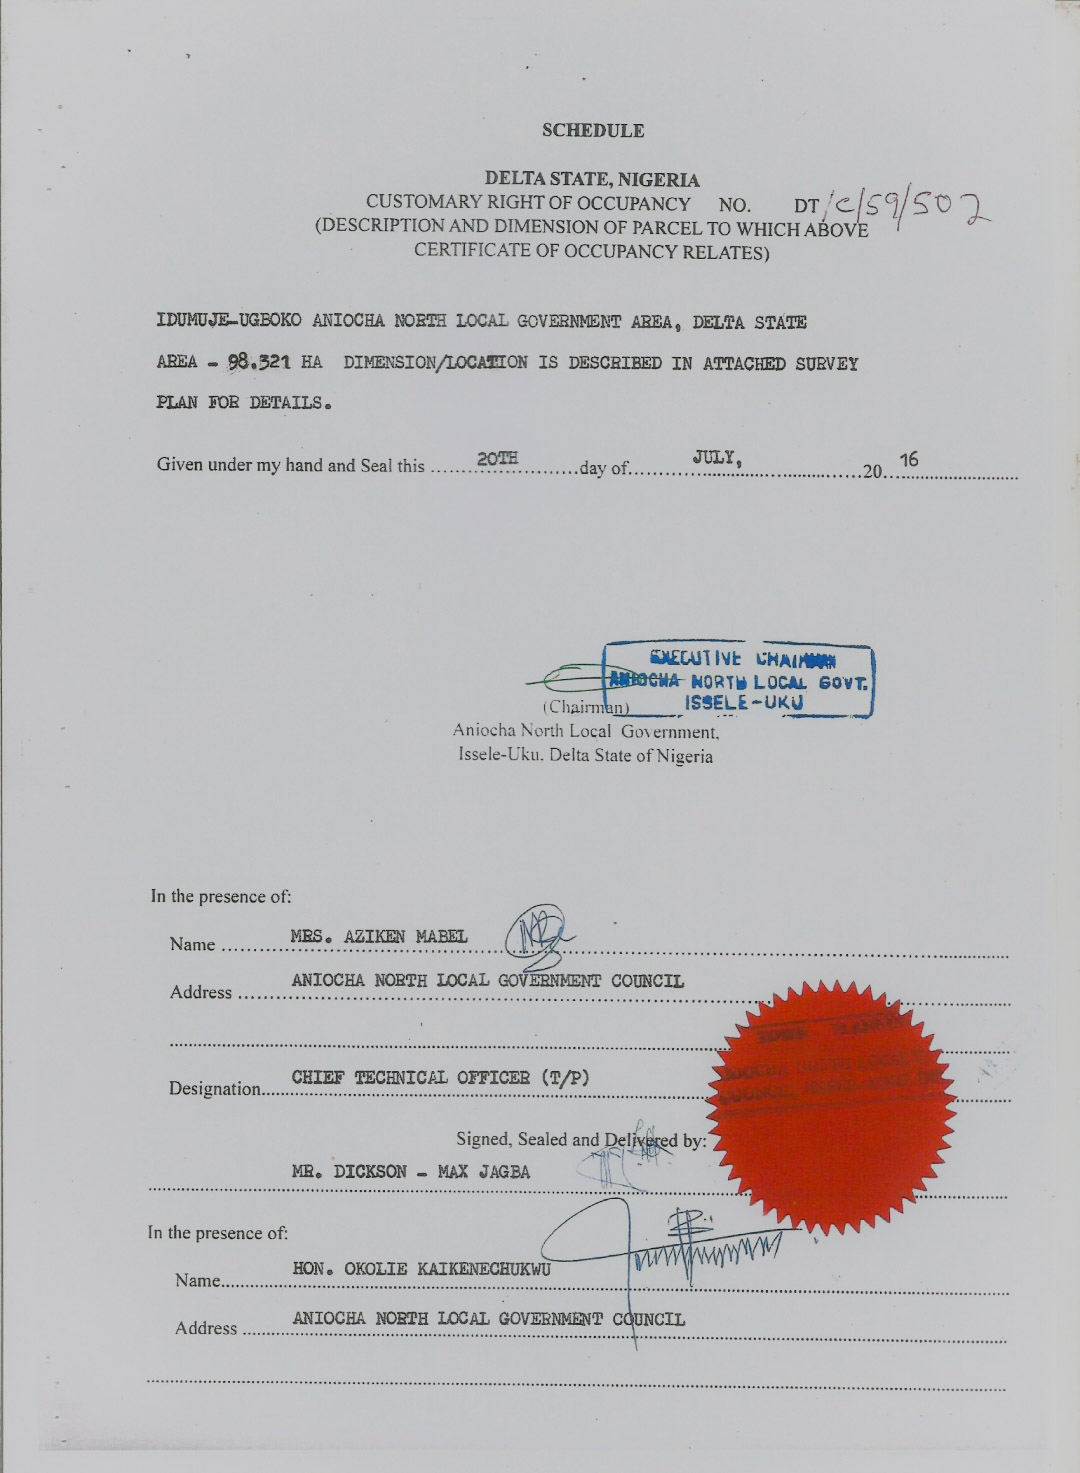 A Screenshot of the Certificate of Occupancy of the 98.321 Hectares